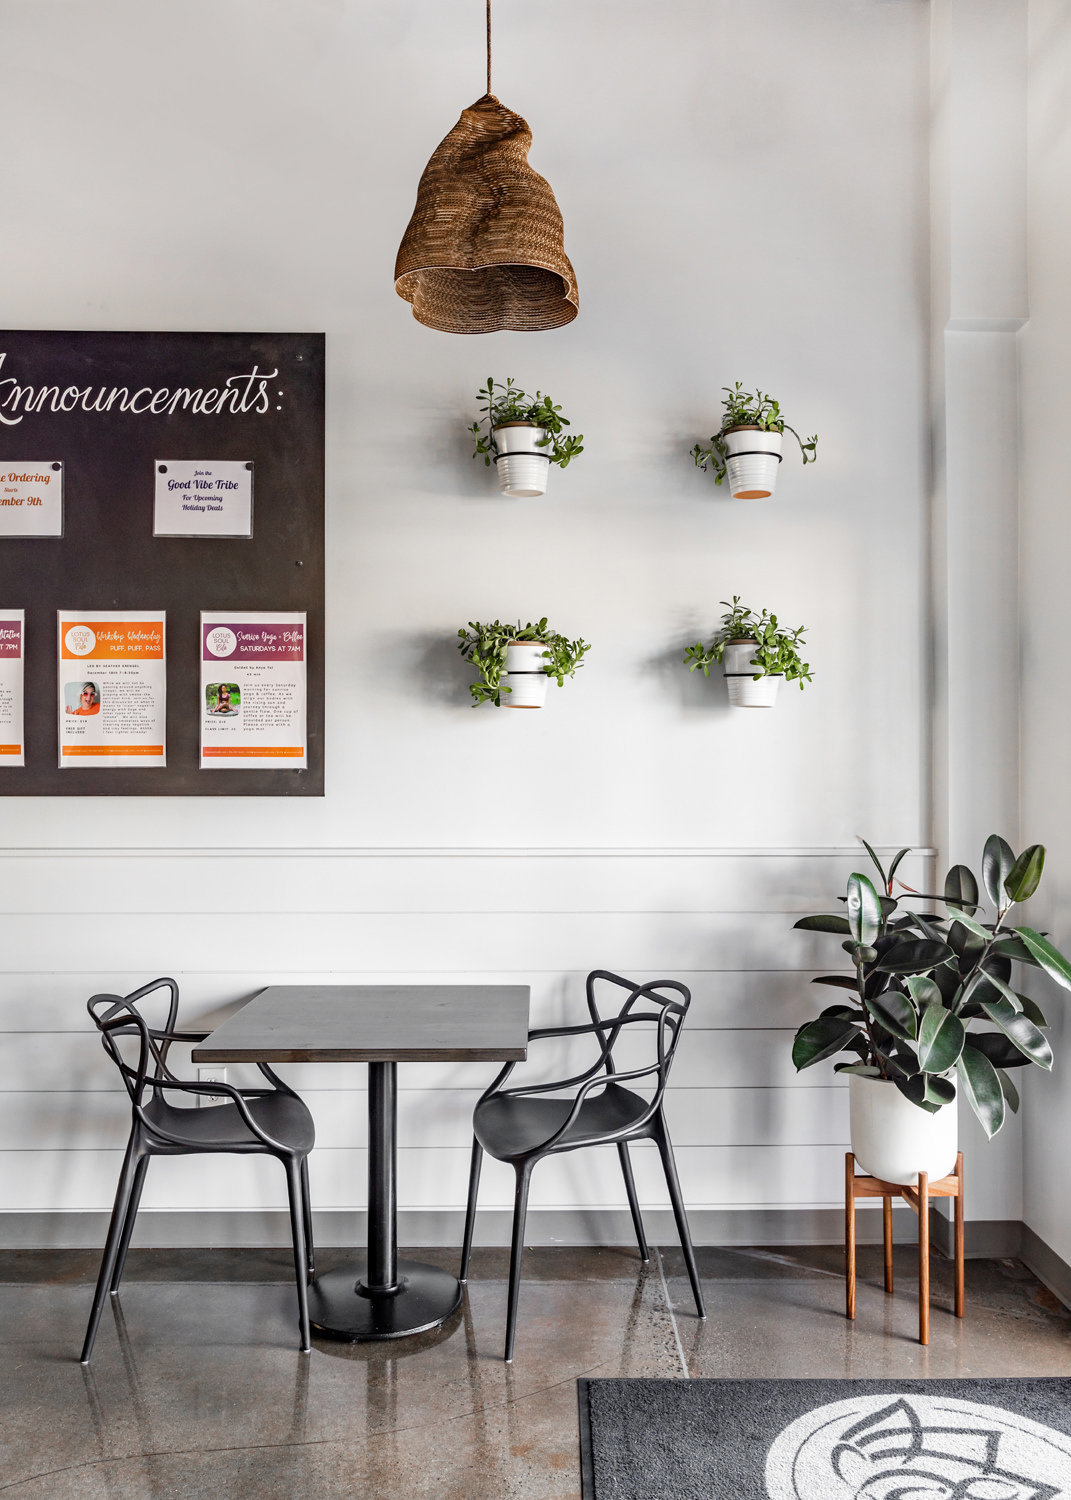 Dominique-DeLaney-Lotus-Soul-Juice-Bar-Wellness-Cafe-Design-11